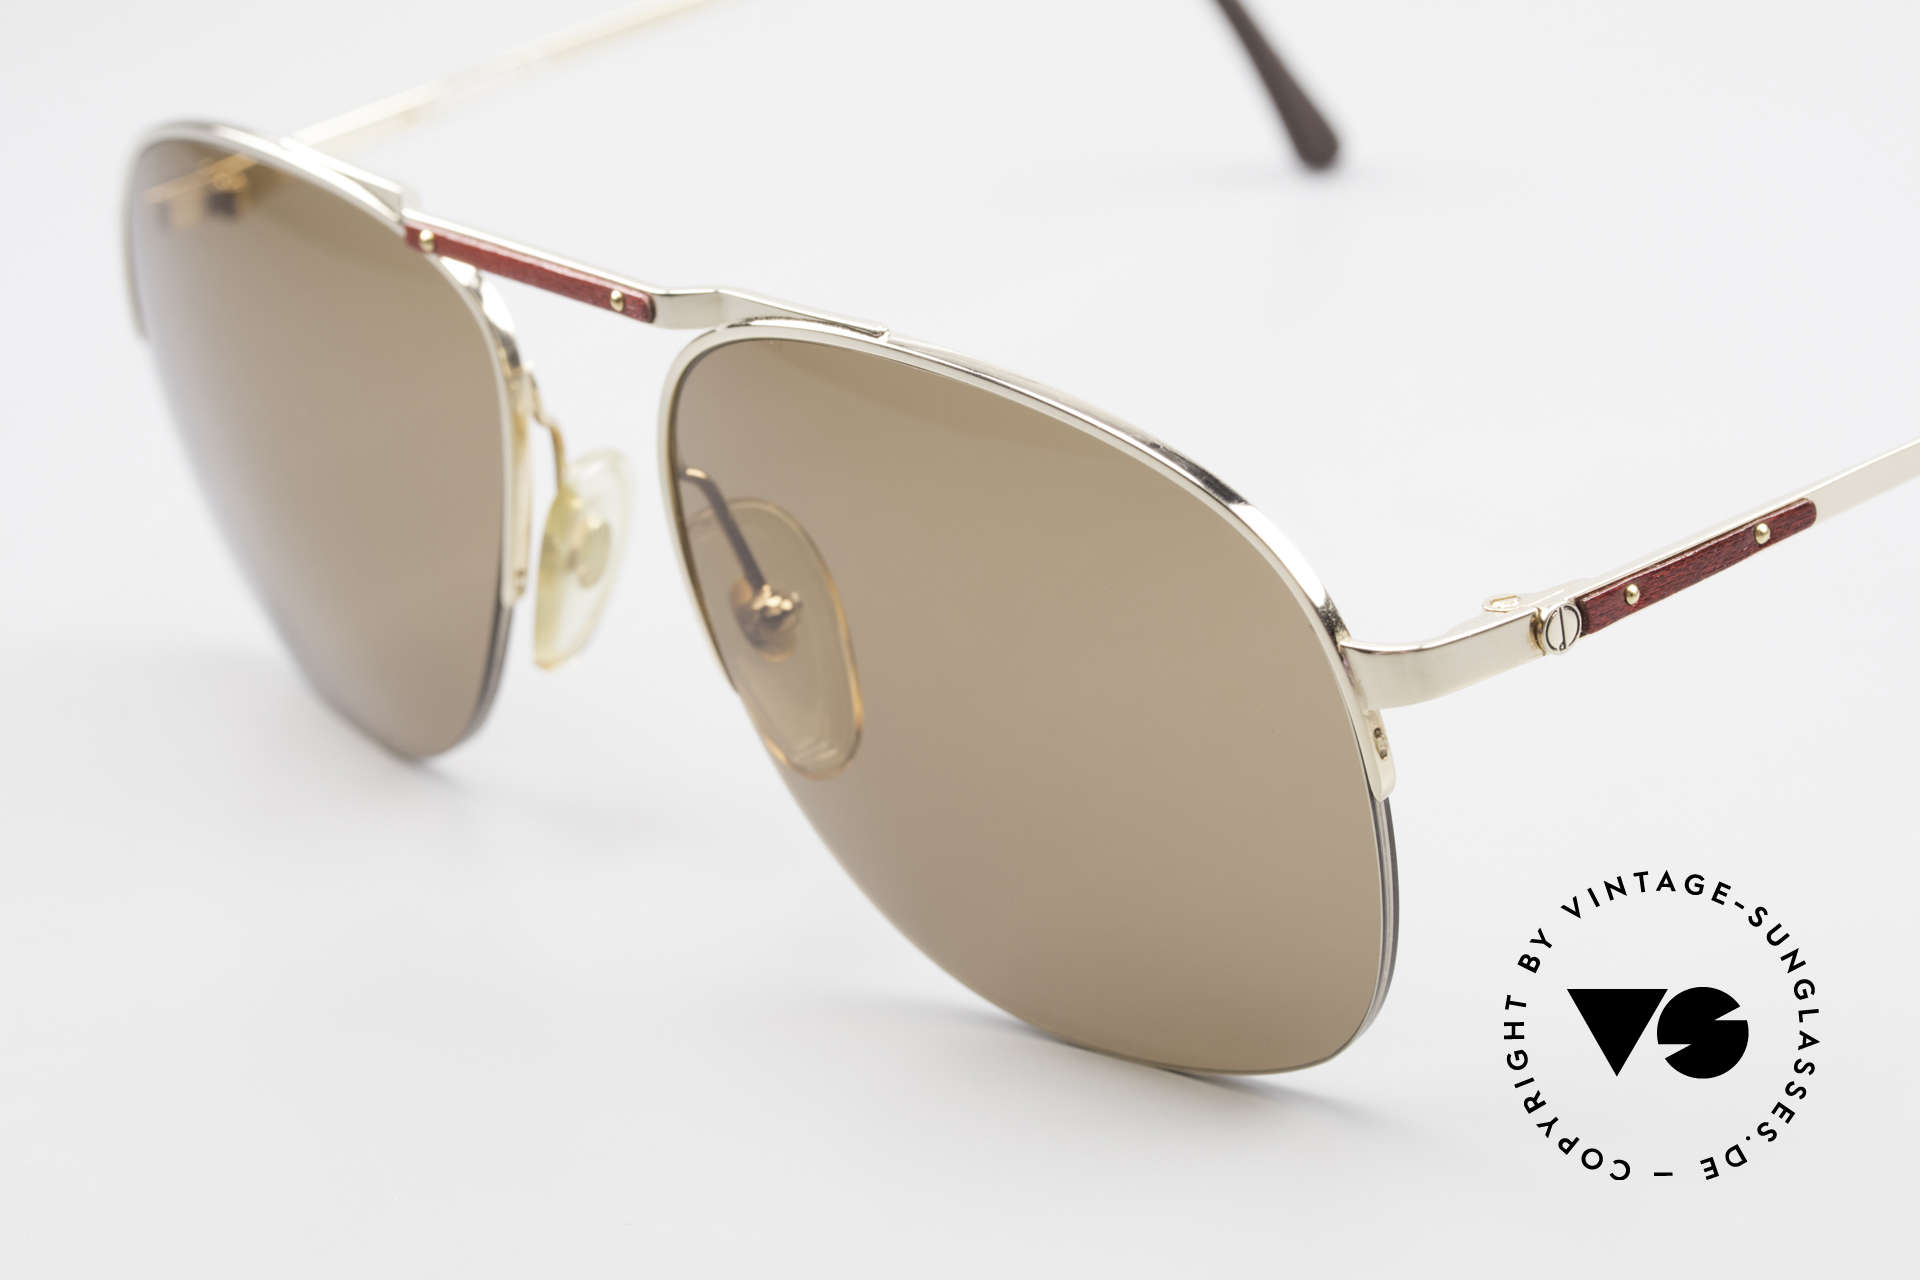 Dunhill 6022 80's Gentlemen's Sunglasses, semi rimless (lightweight and very pleasant to wear), Made for Men